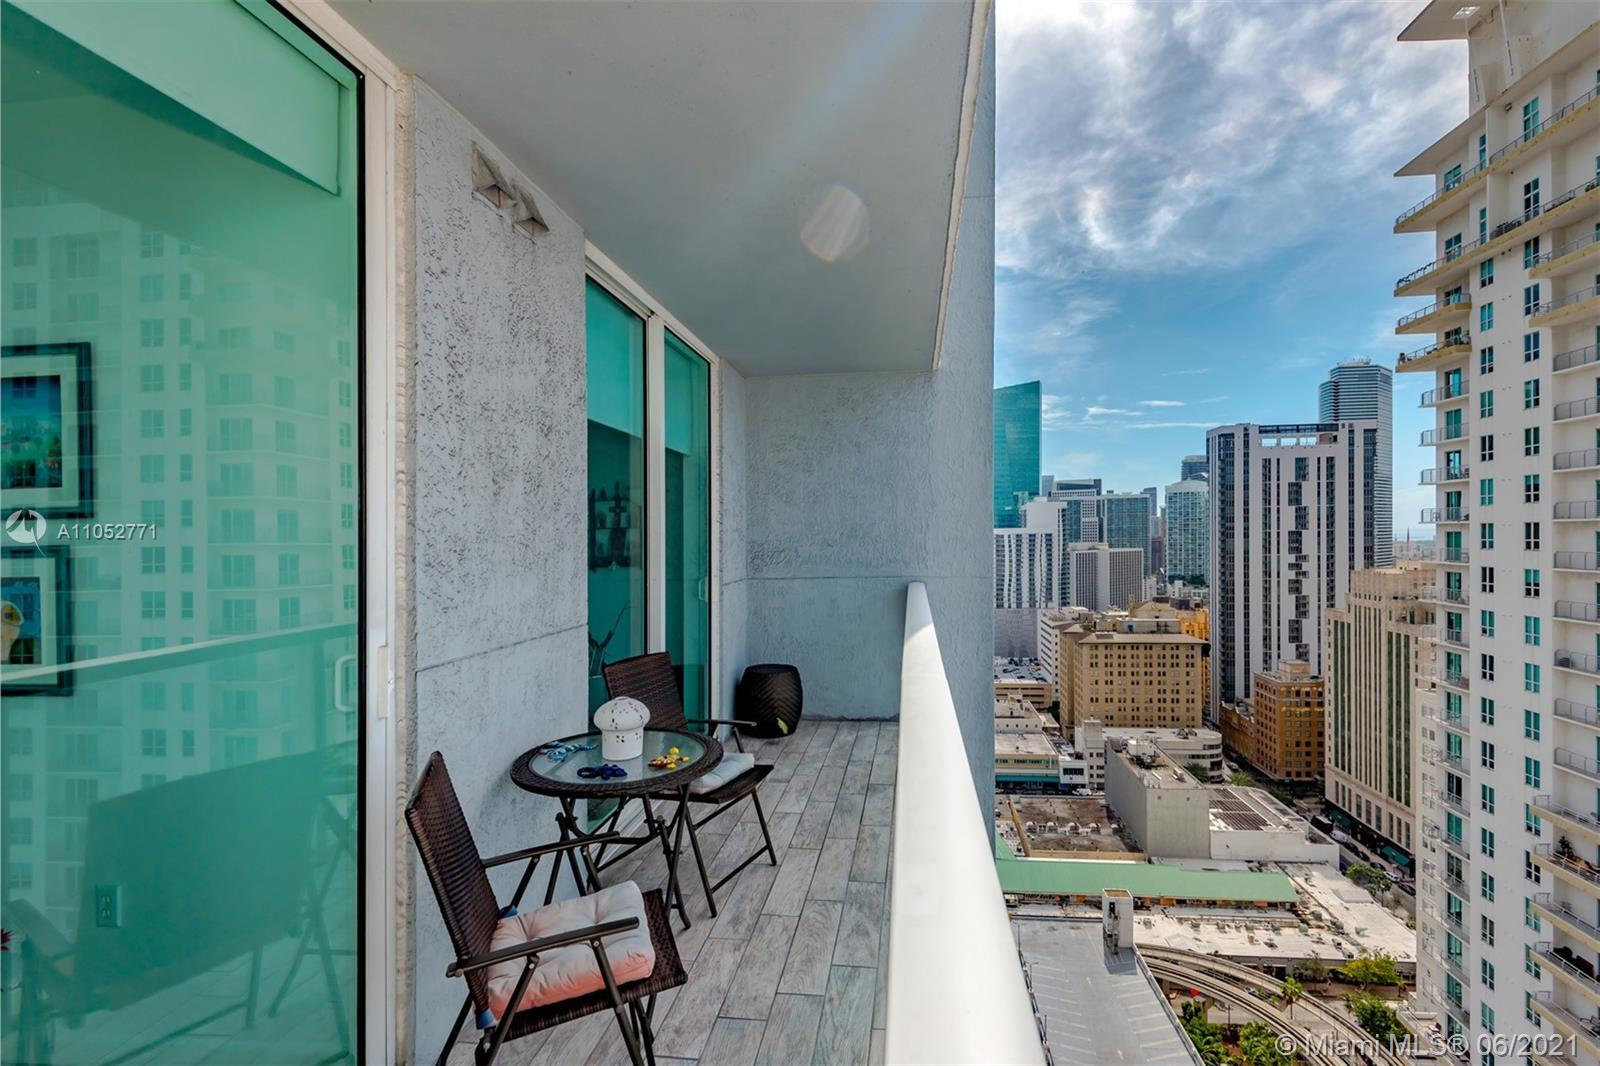 One of the most beautiful units, 1 bedroom, 1 bath, floor to ceiling windows with nice views of the